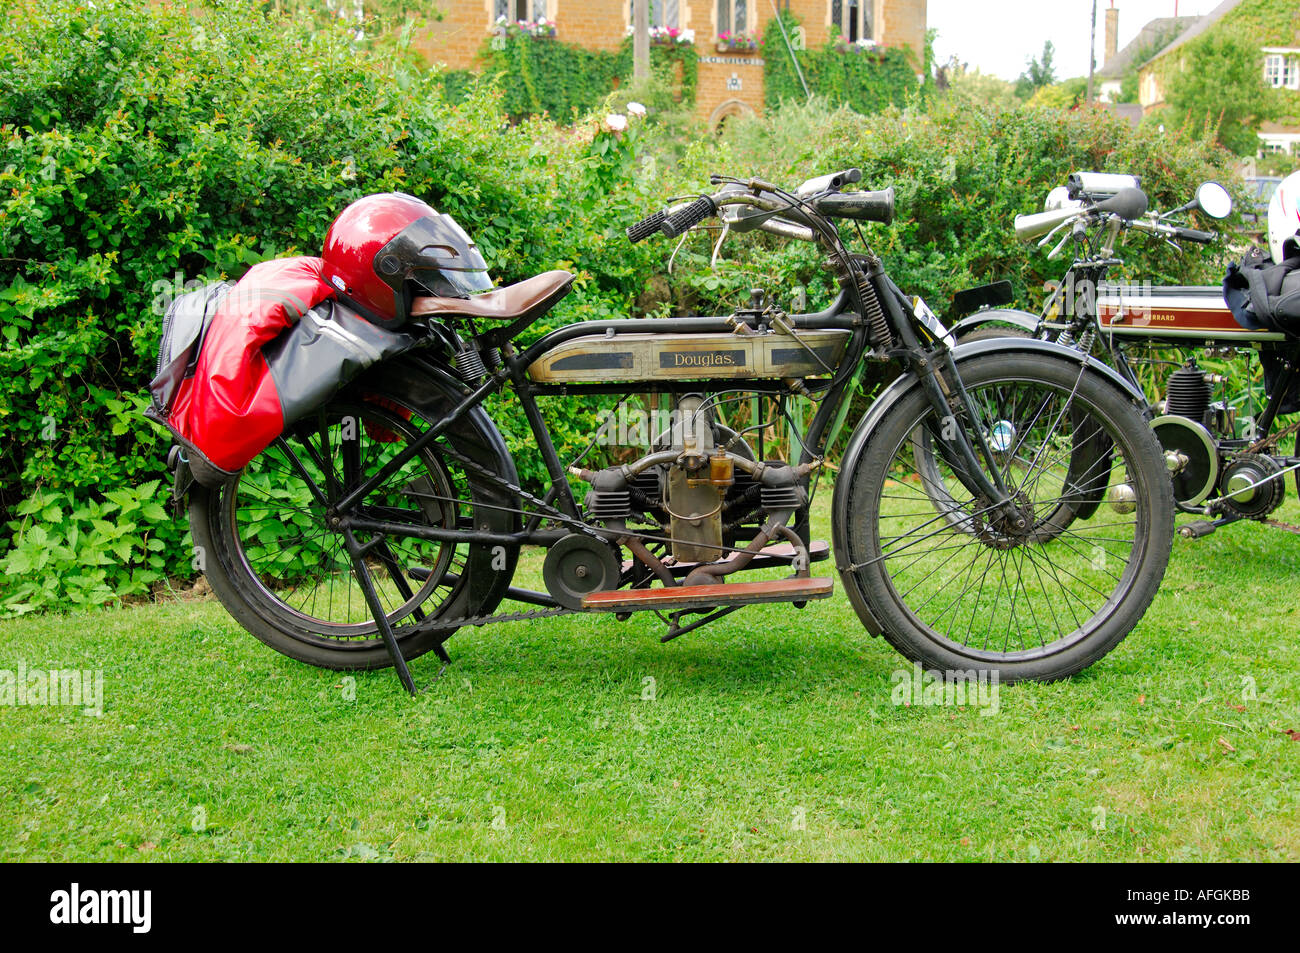 A Douglas vintage motorcycle Stock Photo: 4551610 - Alamy